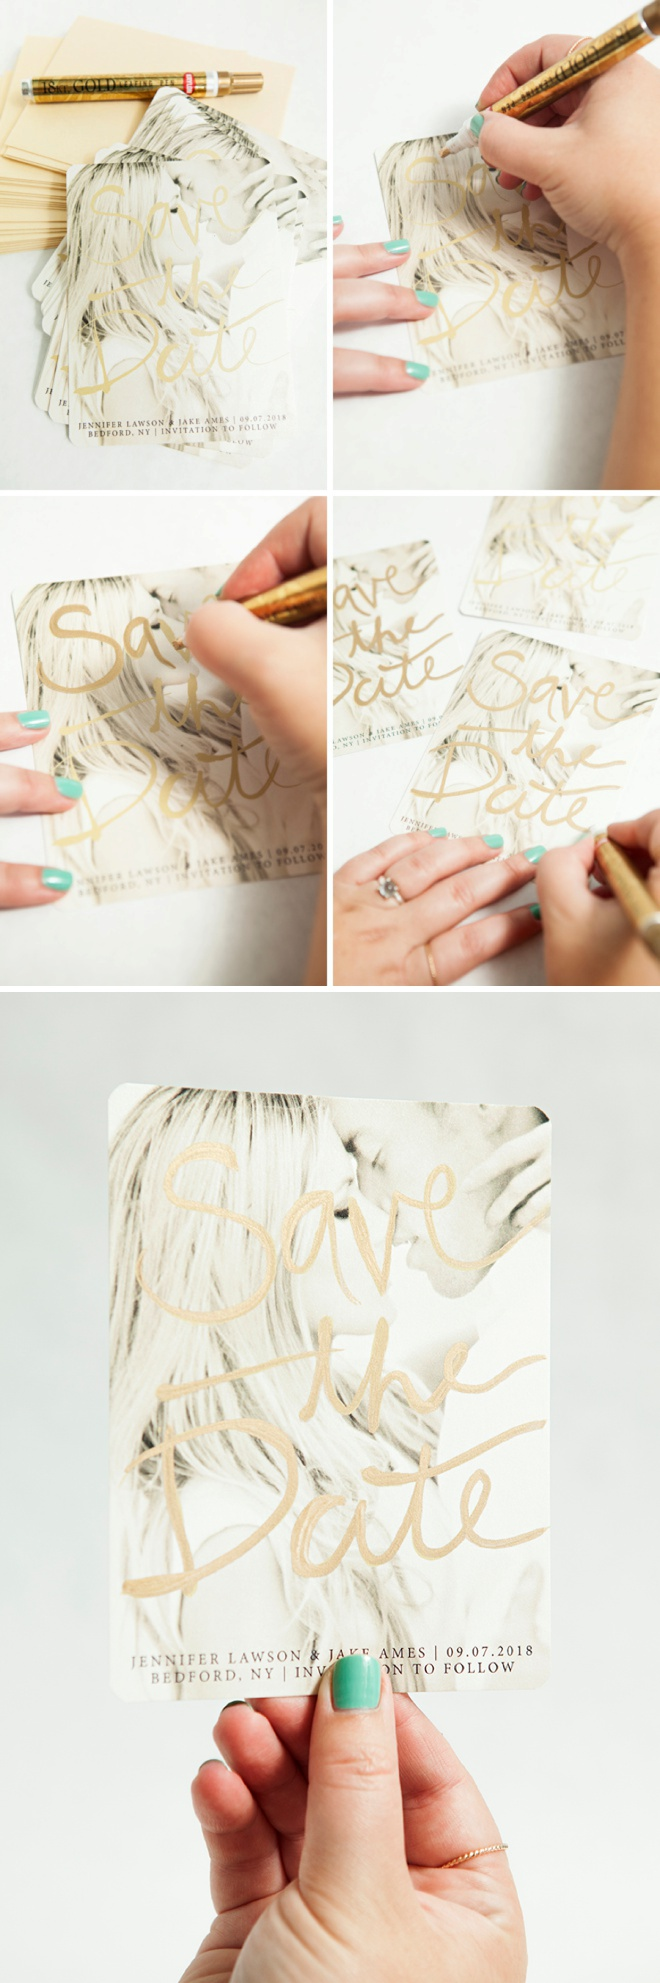 How to add gold leaf lettering to your Save the Date invitations!